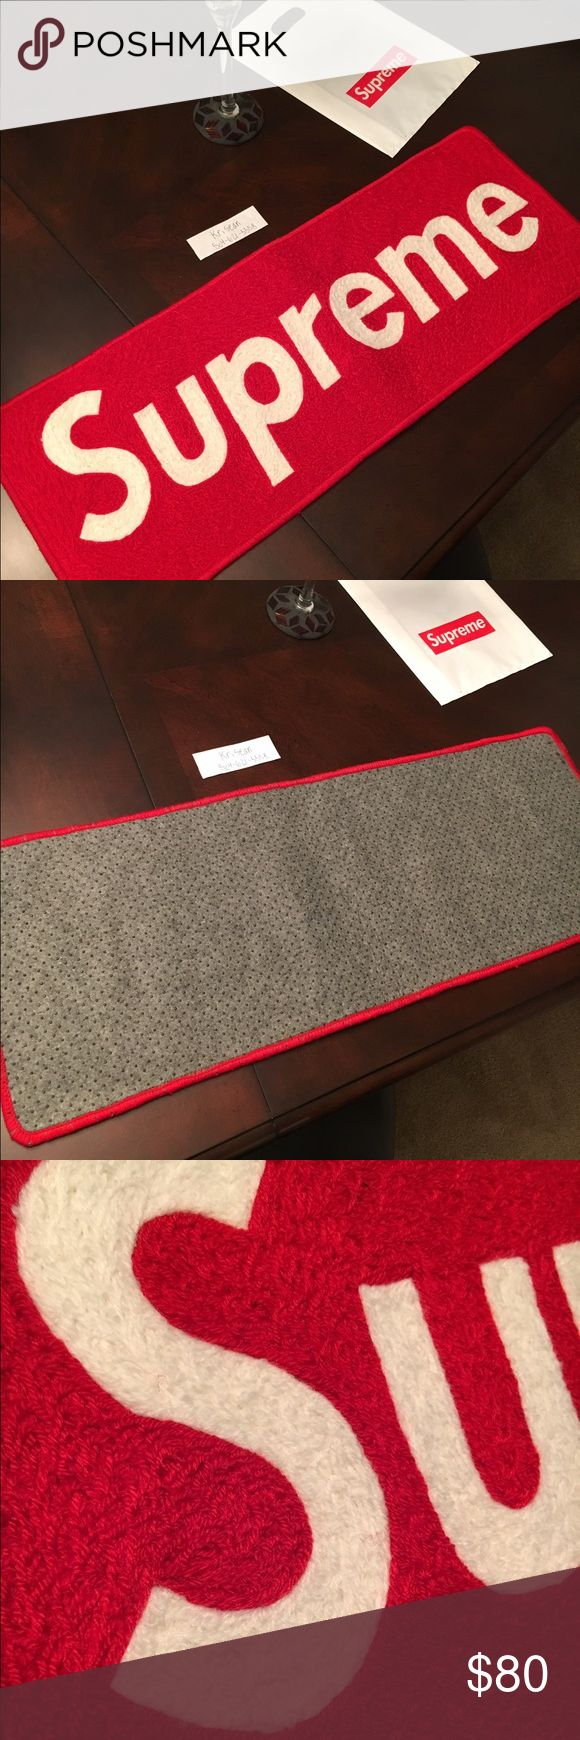 Supreme carpet Brand new supreme carpets for sale $80  Also listening to all offers, Let me know how much you have I'm willing to negotiate. Supreme Accessories